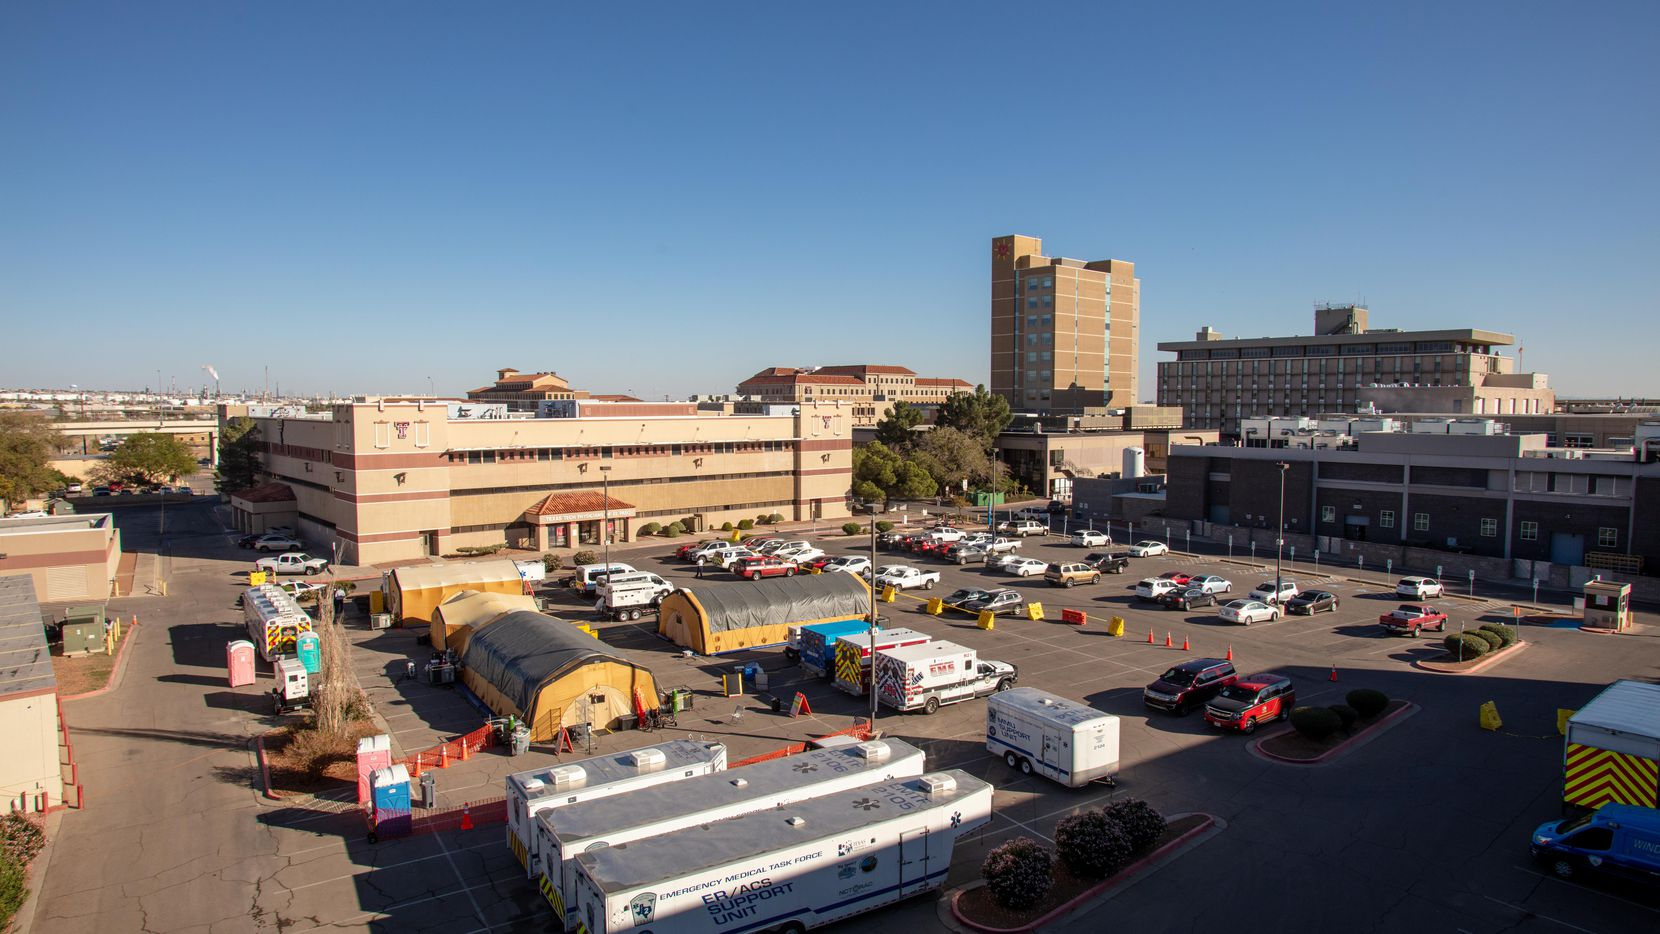 University Medical Center in El Paso has put up extra tents in the parking lot for coronavirus patients.